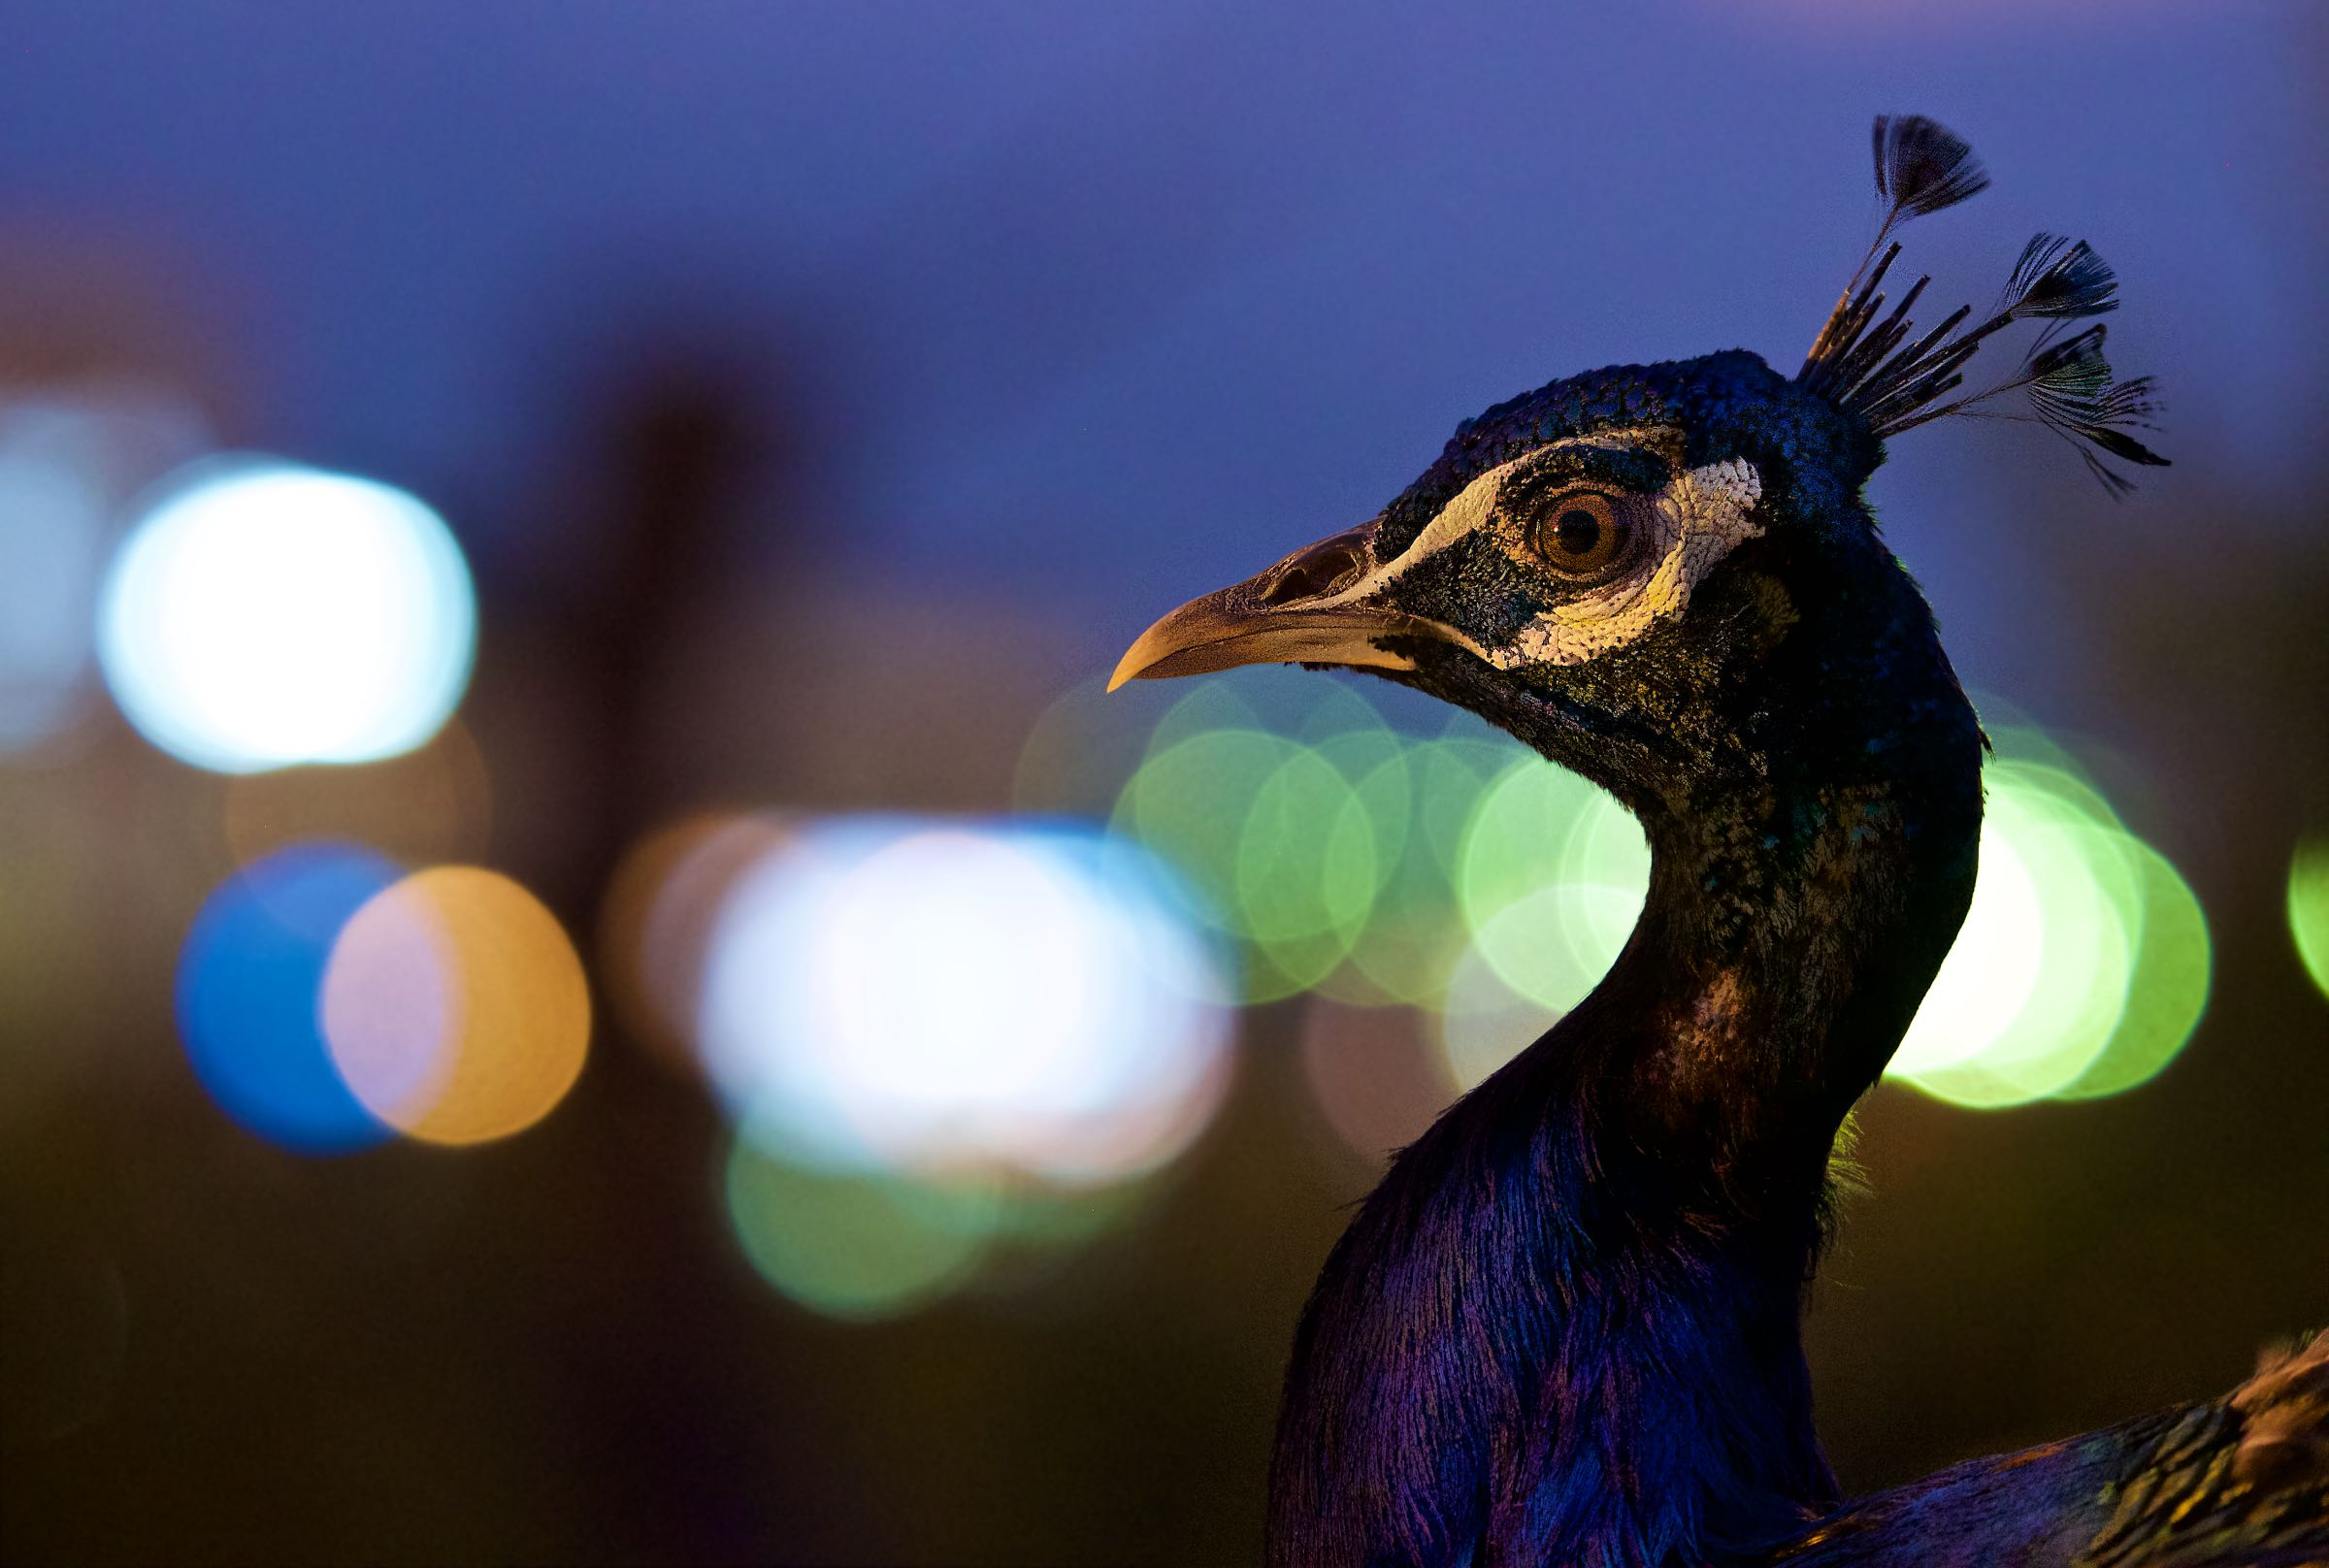 Peacock in the Lights